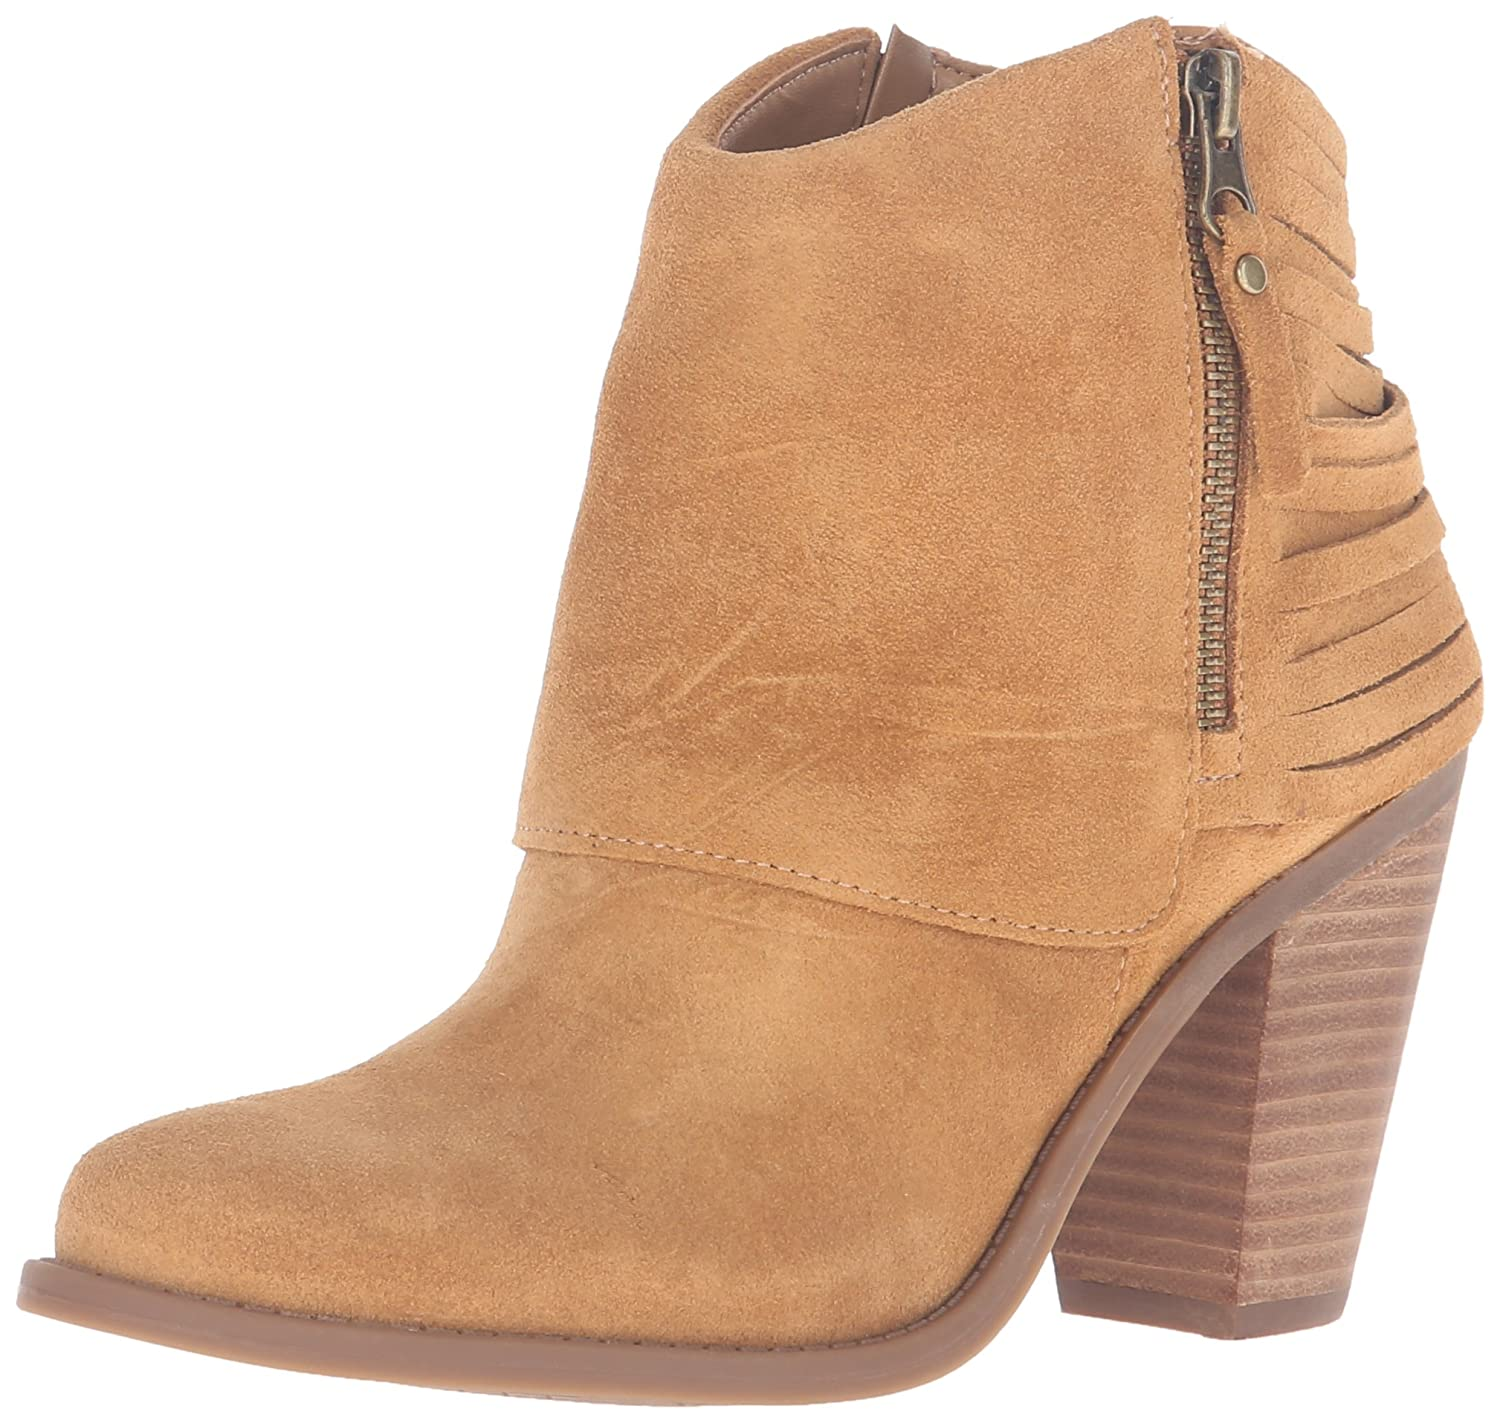 Jessica Simpson Women's Cerrina Ankle Bootie B01GPYG6XE 9.5 B(M) US|Honey Brown